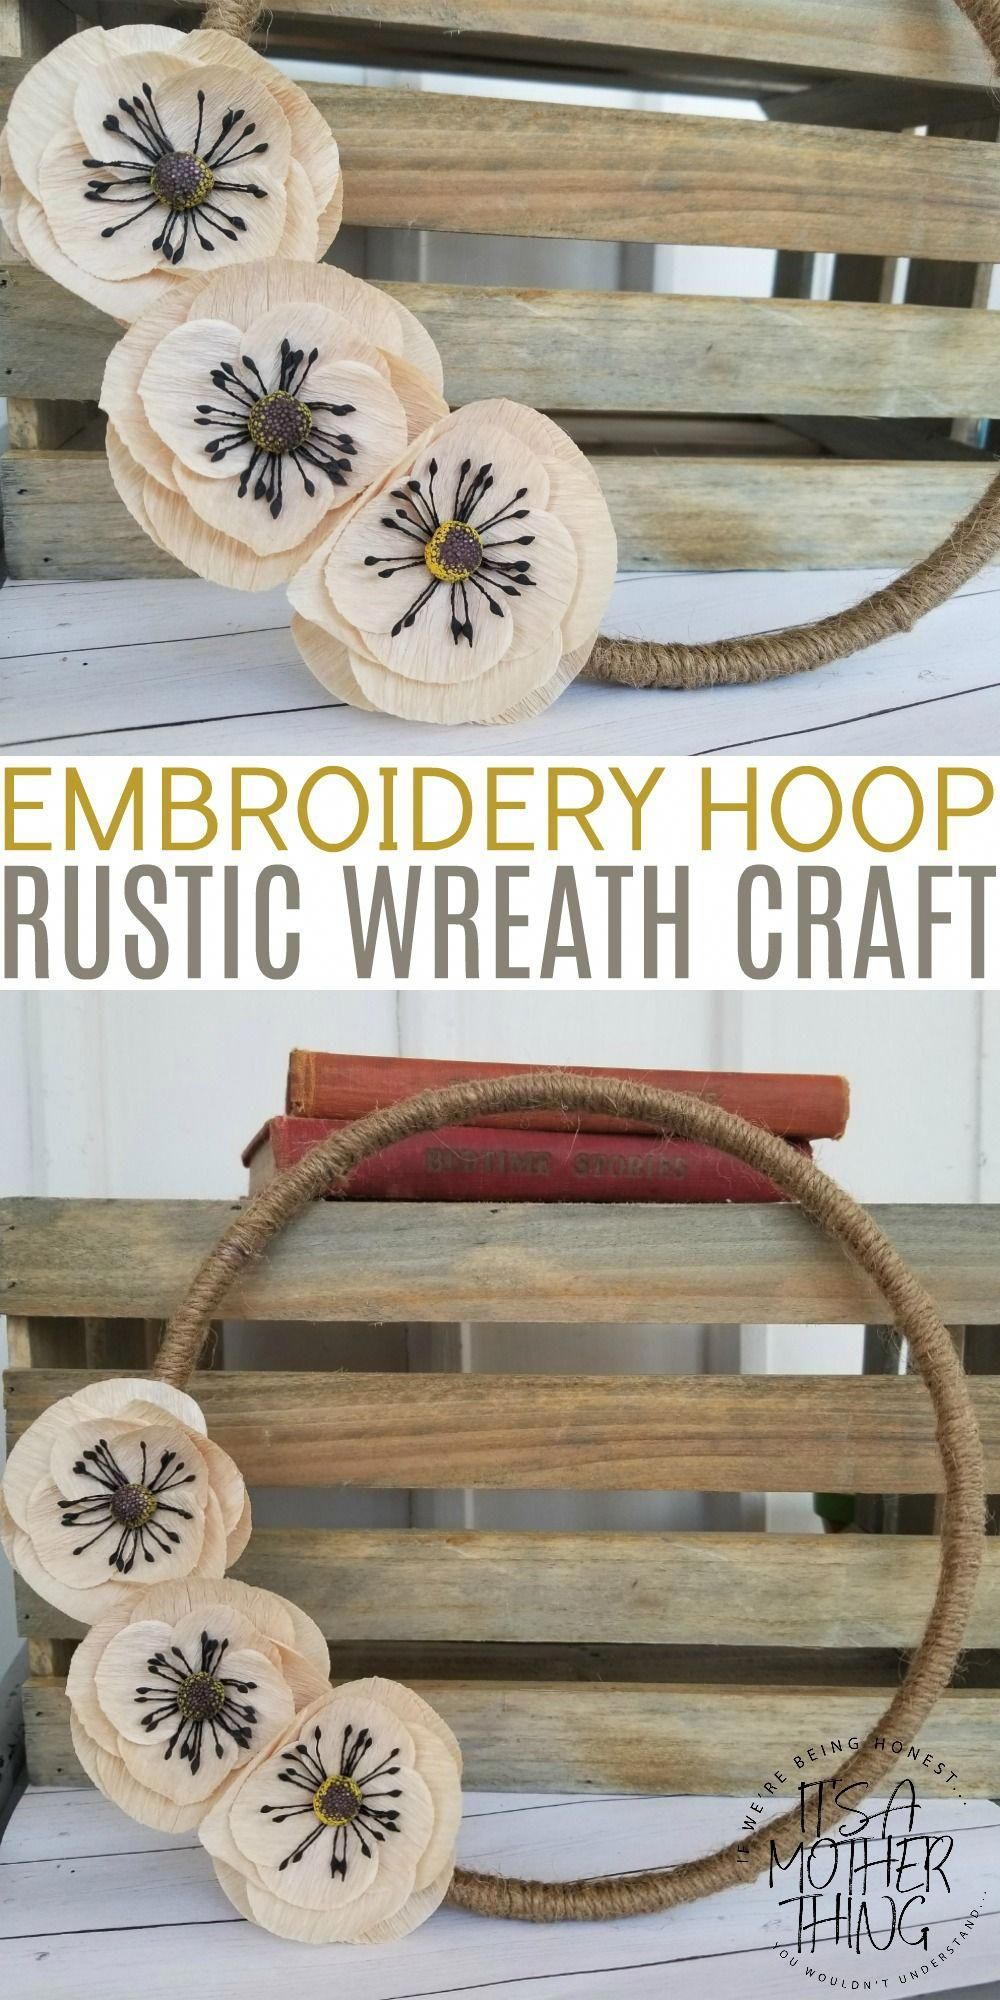 Embroidery hoop rustic twine wreath simple and elegant country craft homedecor also rh pinterest